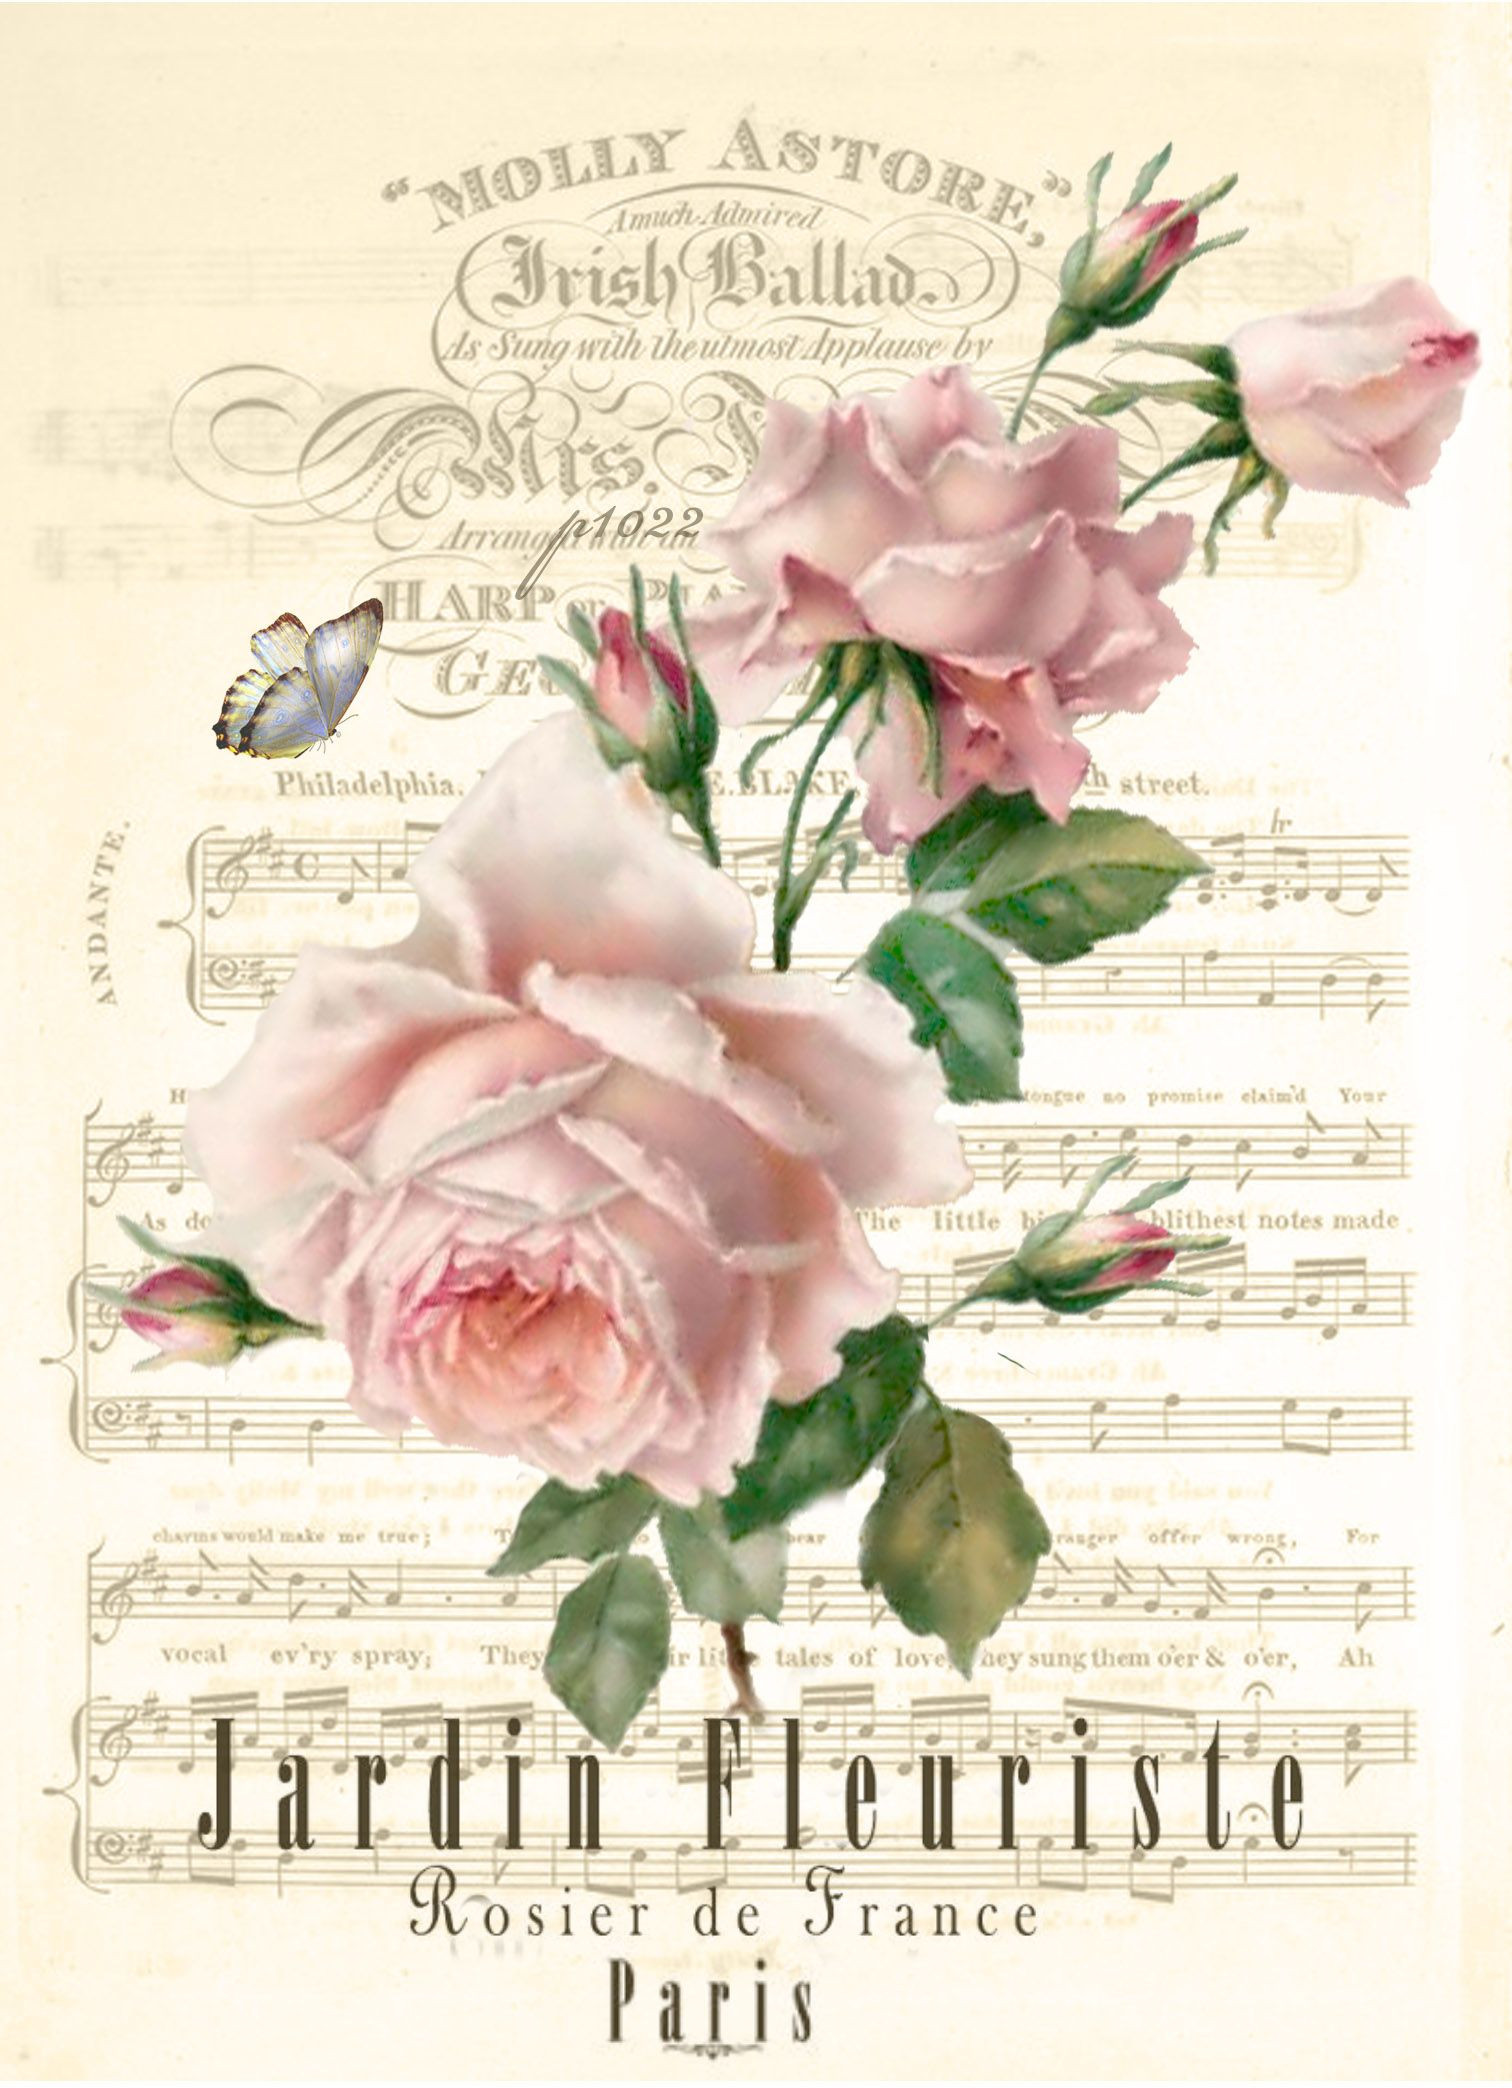 Flower Coupons New Vintage Rose Music Sheet Digital Collage P1022 Free for Personal